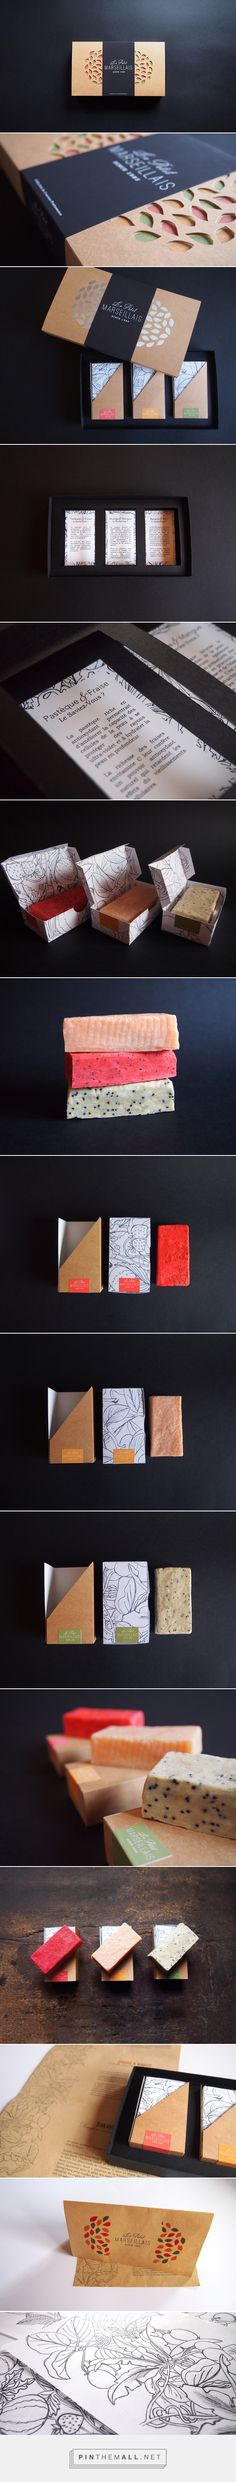 Fruitessence Soap - Le Petit Marseillais (Student Project) - Packaging of the World - Creative Package Design Gallery - http://www.packagingoftheworld.com/2016/08/fruitessence-soap-le-petit-marseillais.html